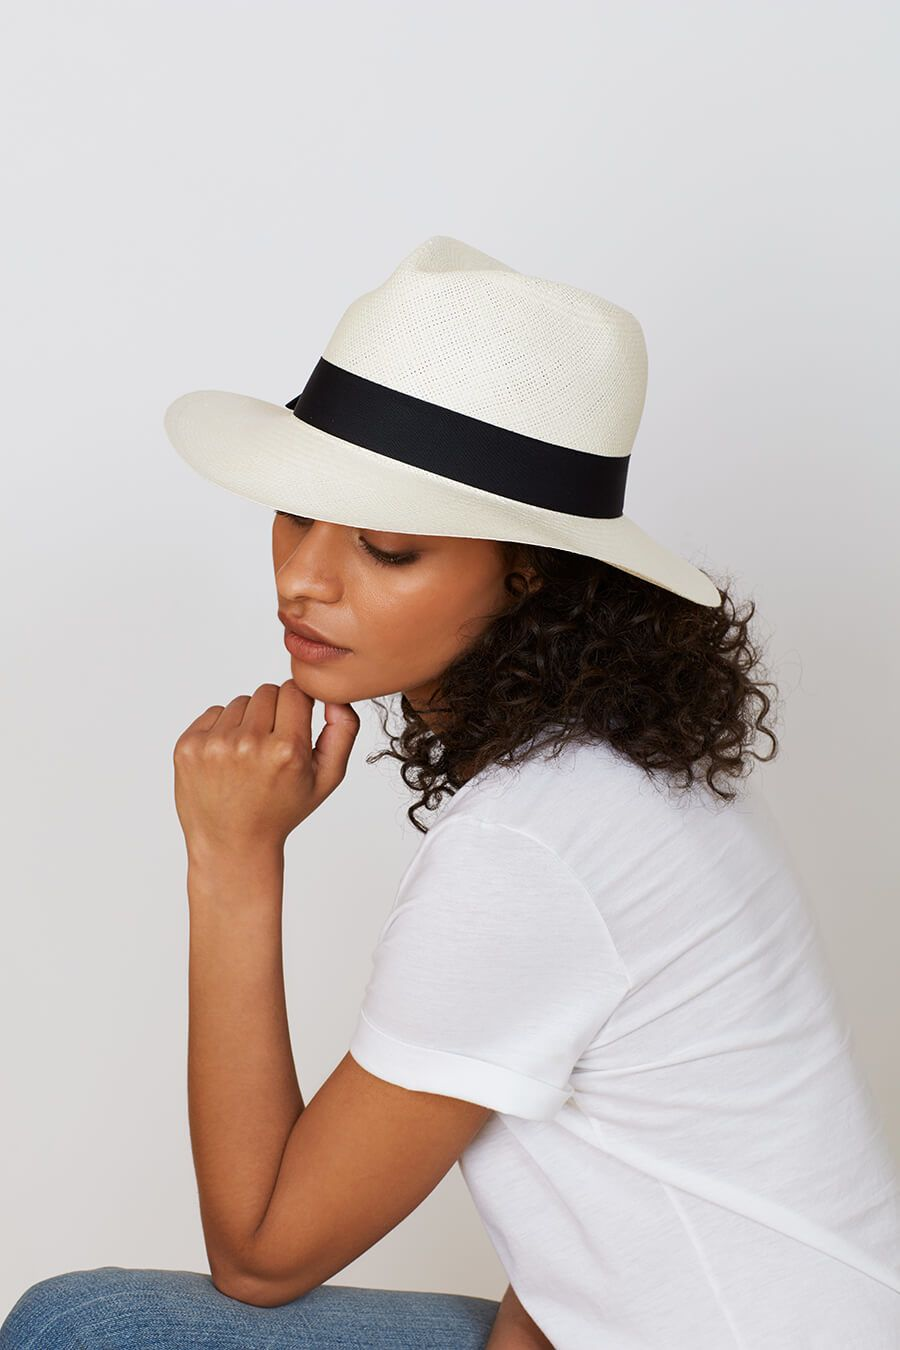 a12678e13a876 You could say we know a thing or two about Panama hats. For one